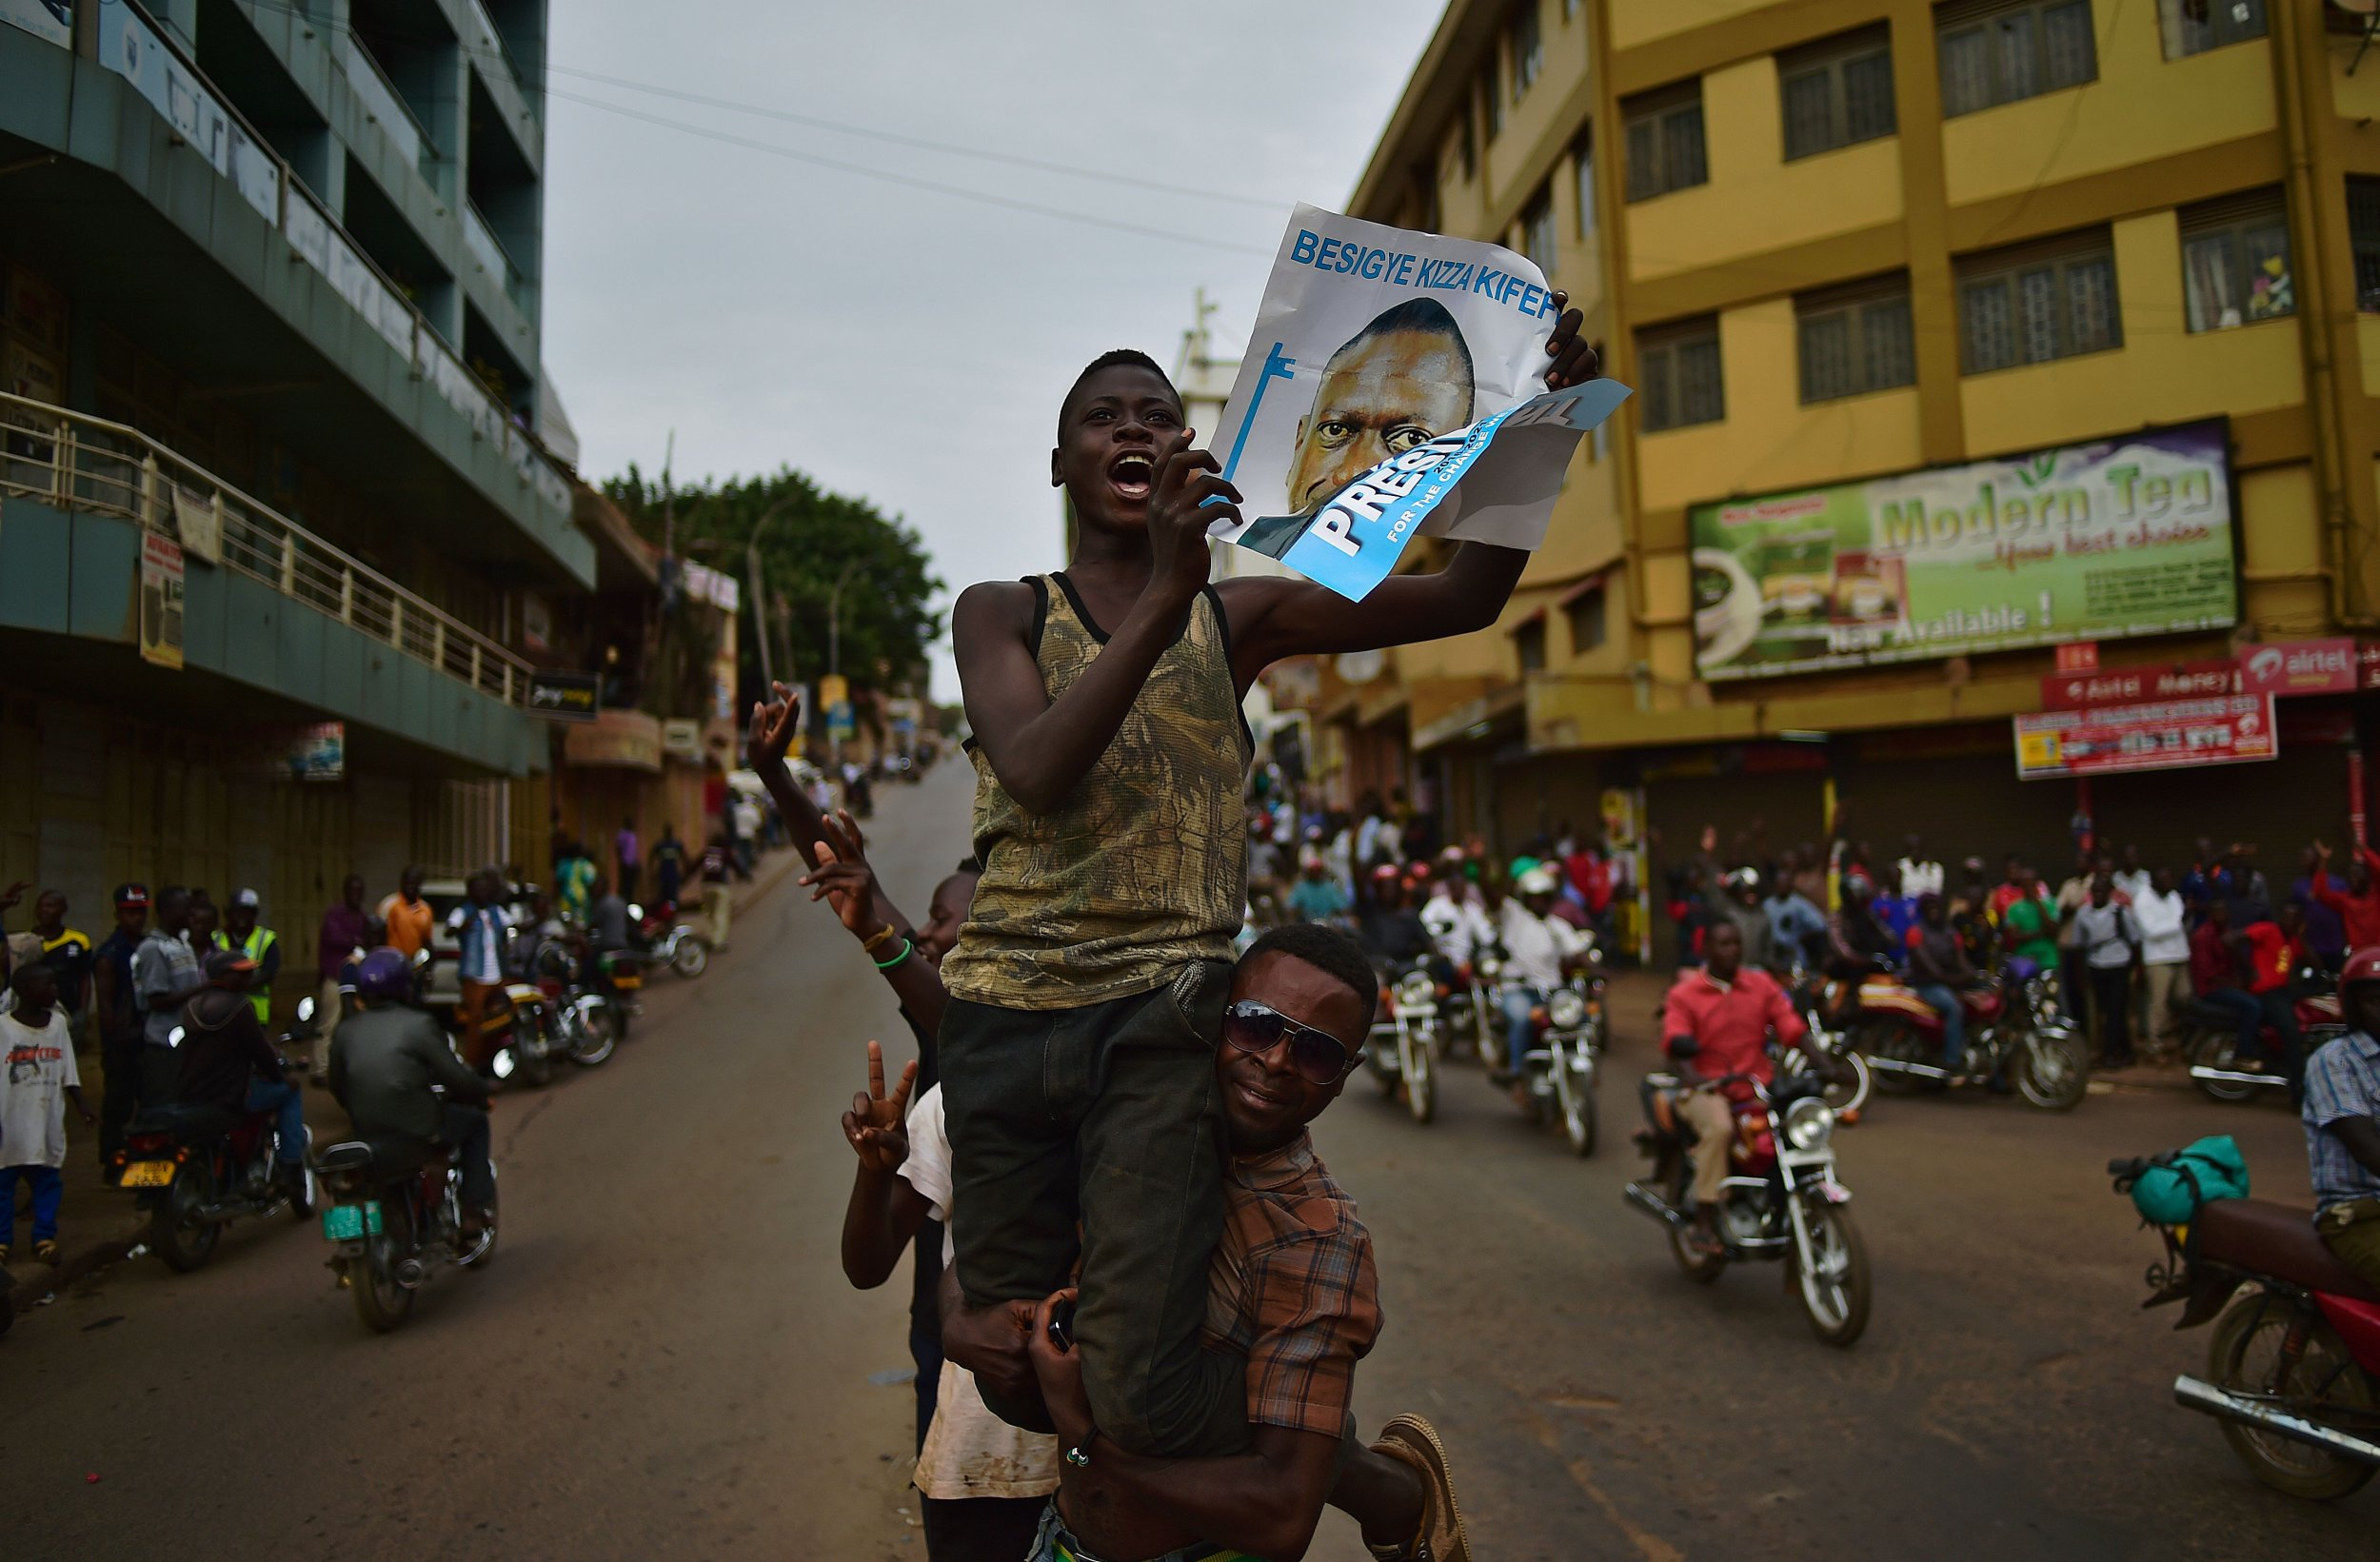 Kizza Besigye supporters cheer in Kampala.